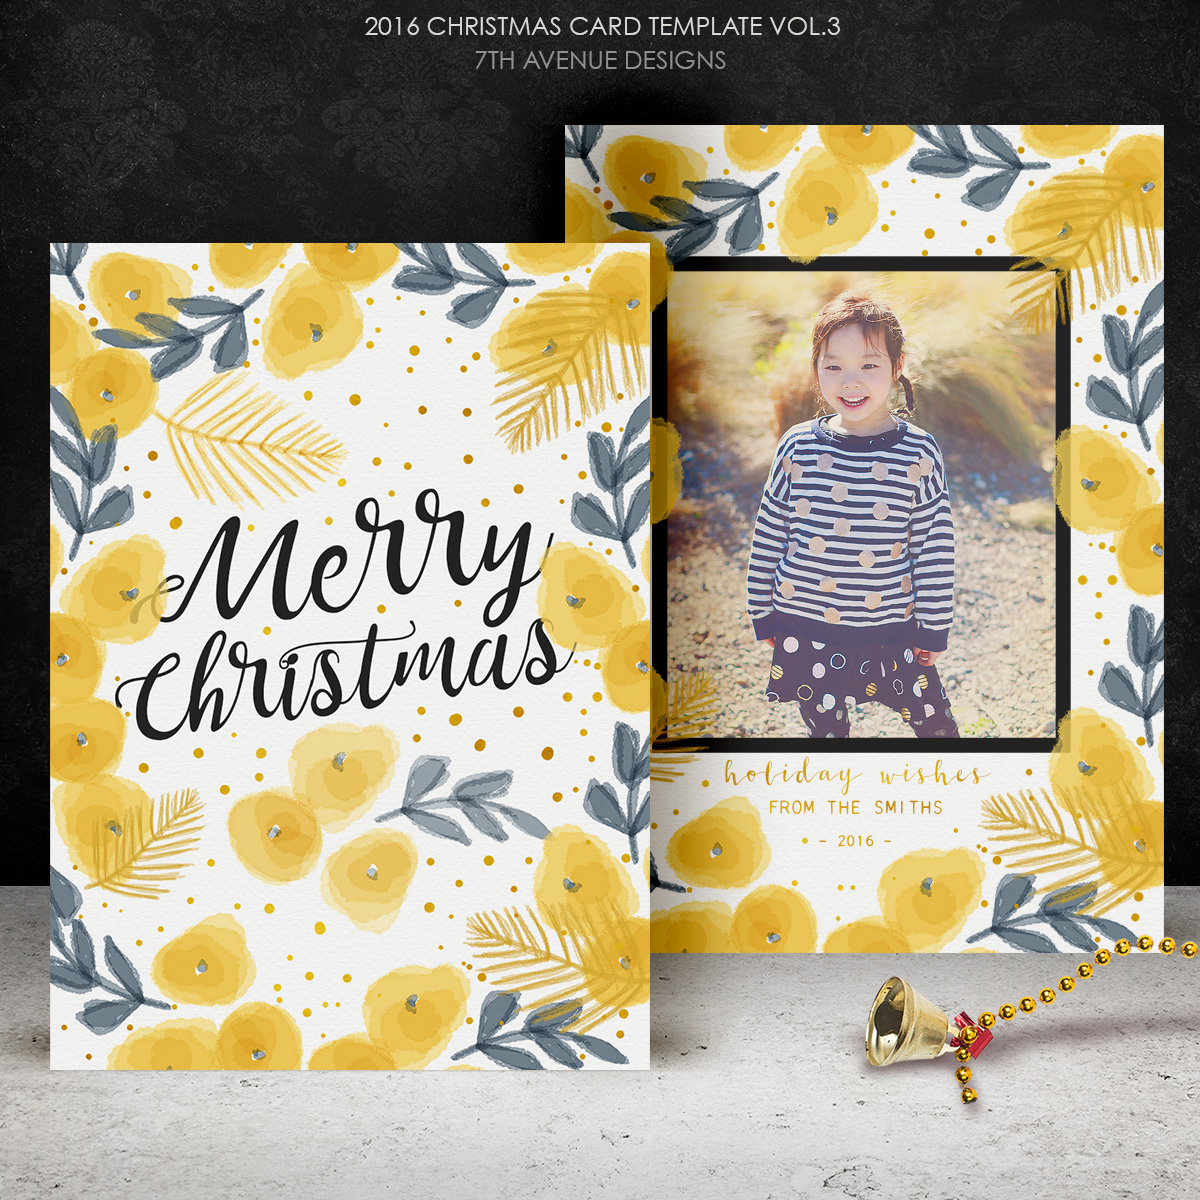 2016 Christmas Card Templates vol.3 -- 7x5 inch card template